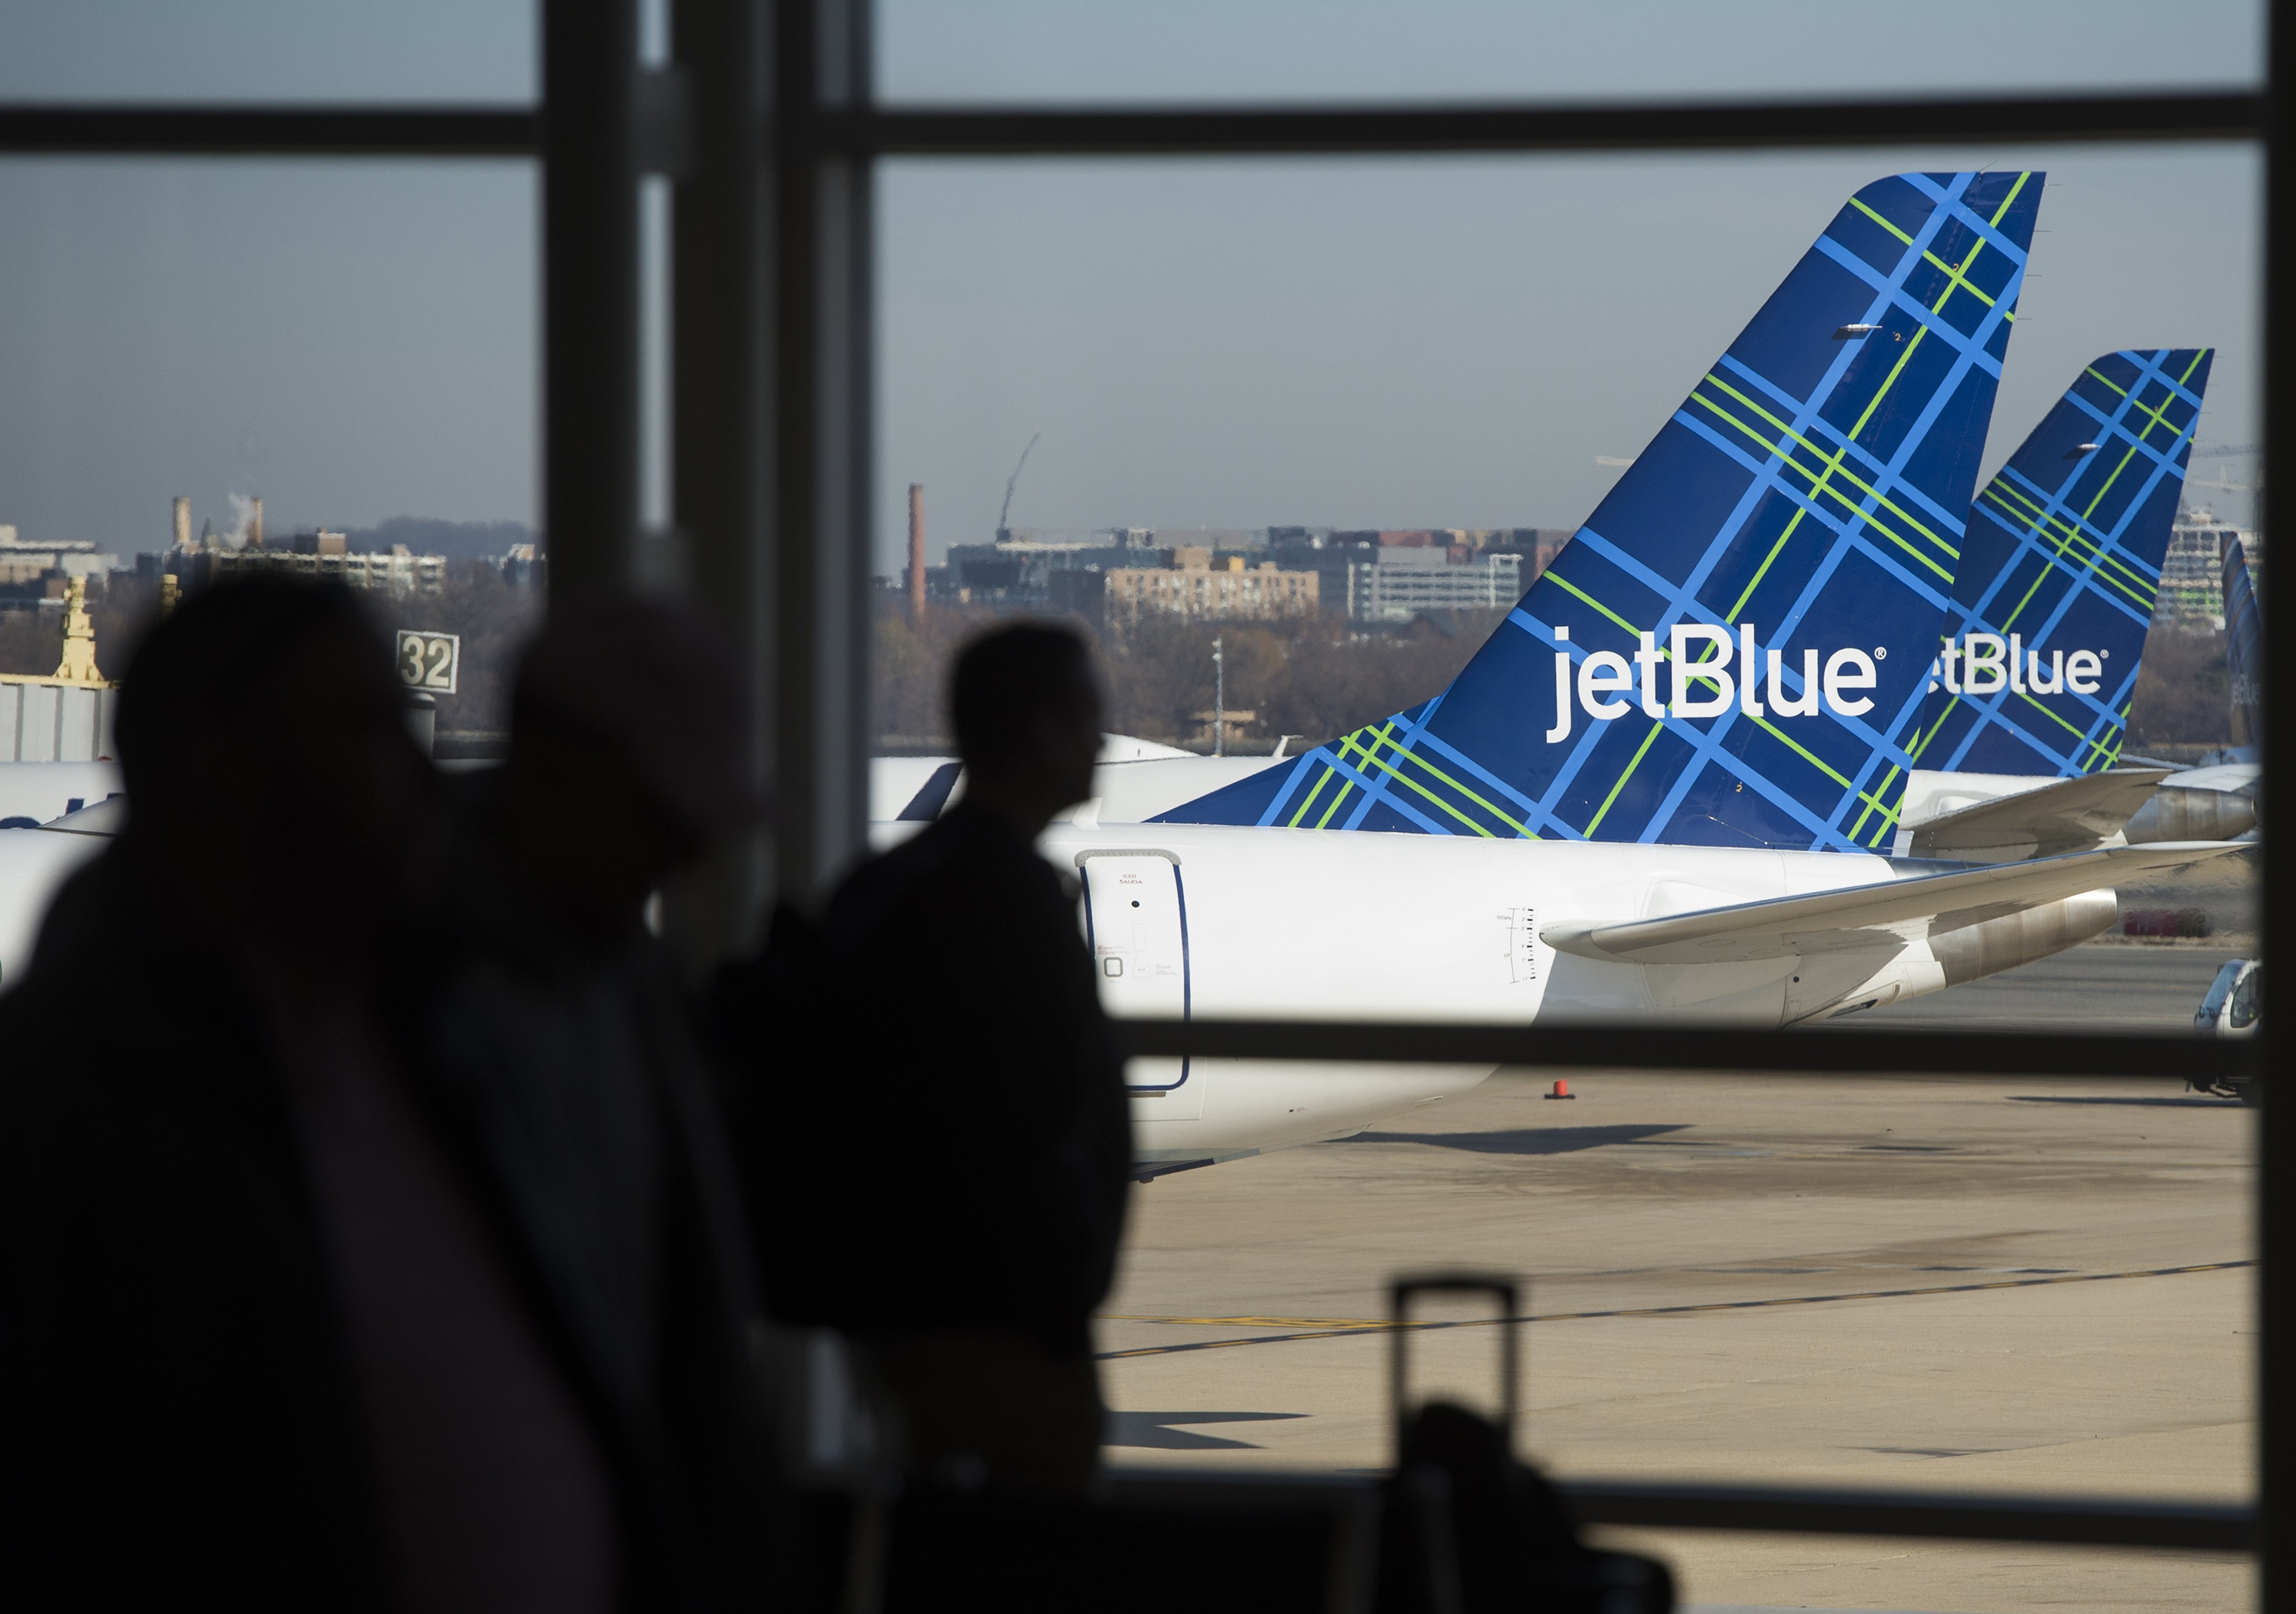 Checking your bag on JetBlue is about to get more expensive